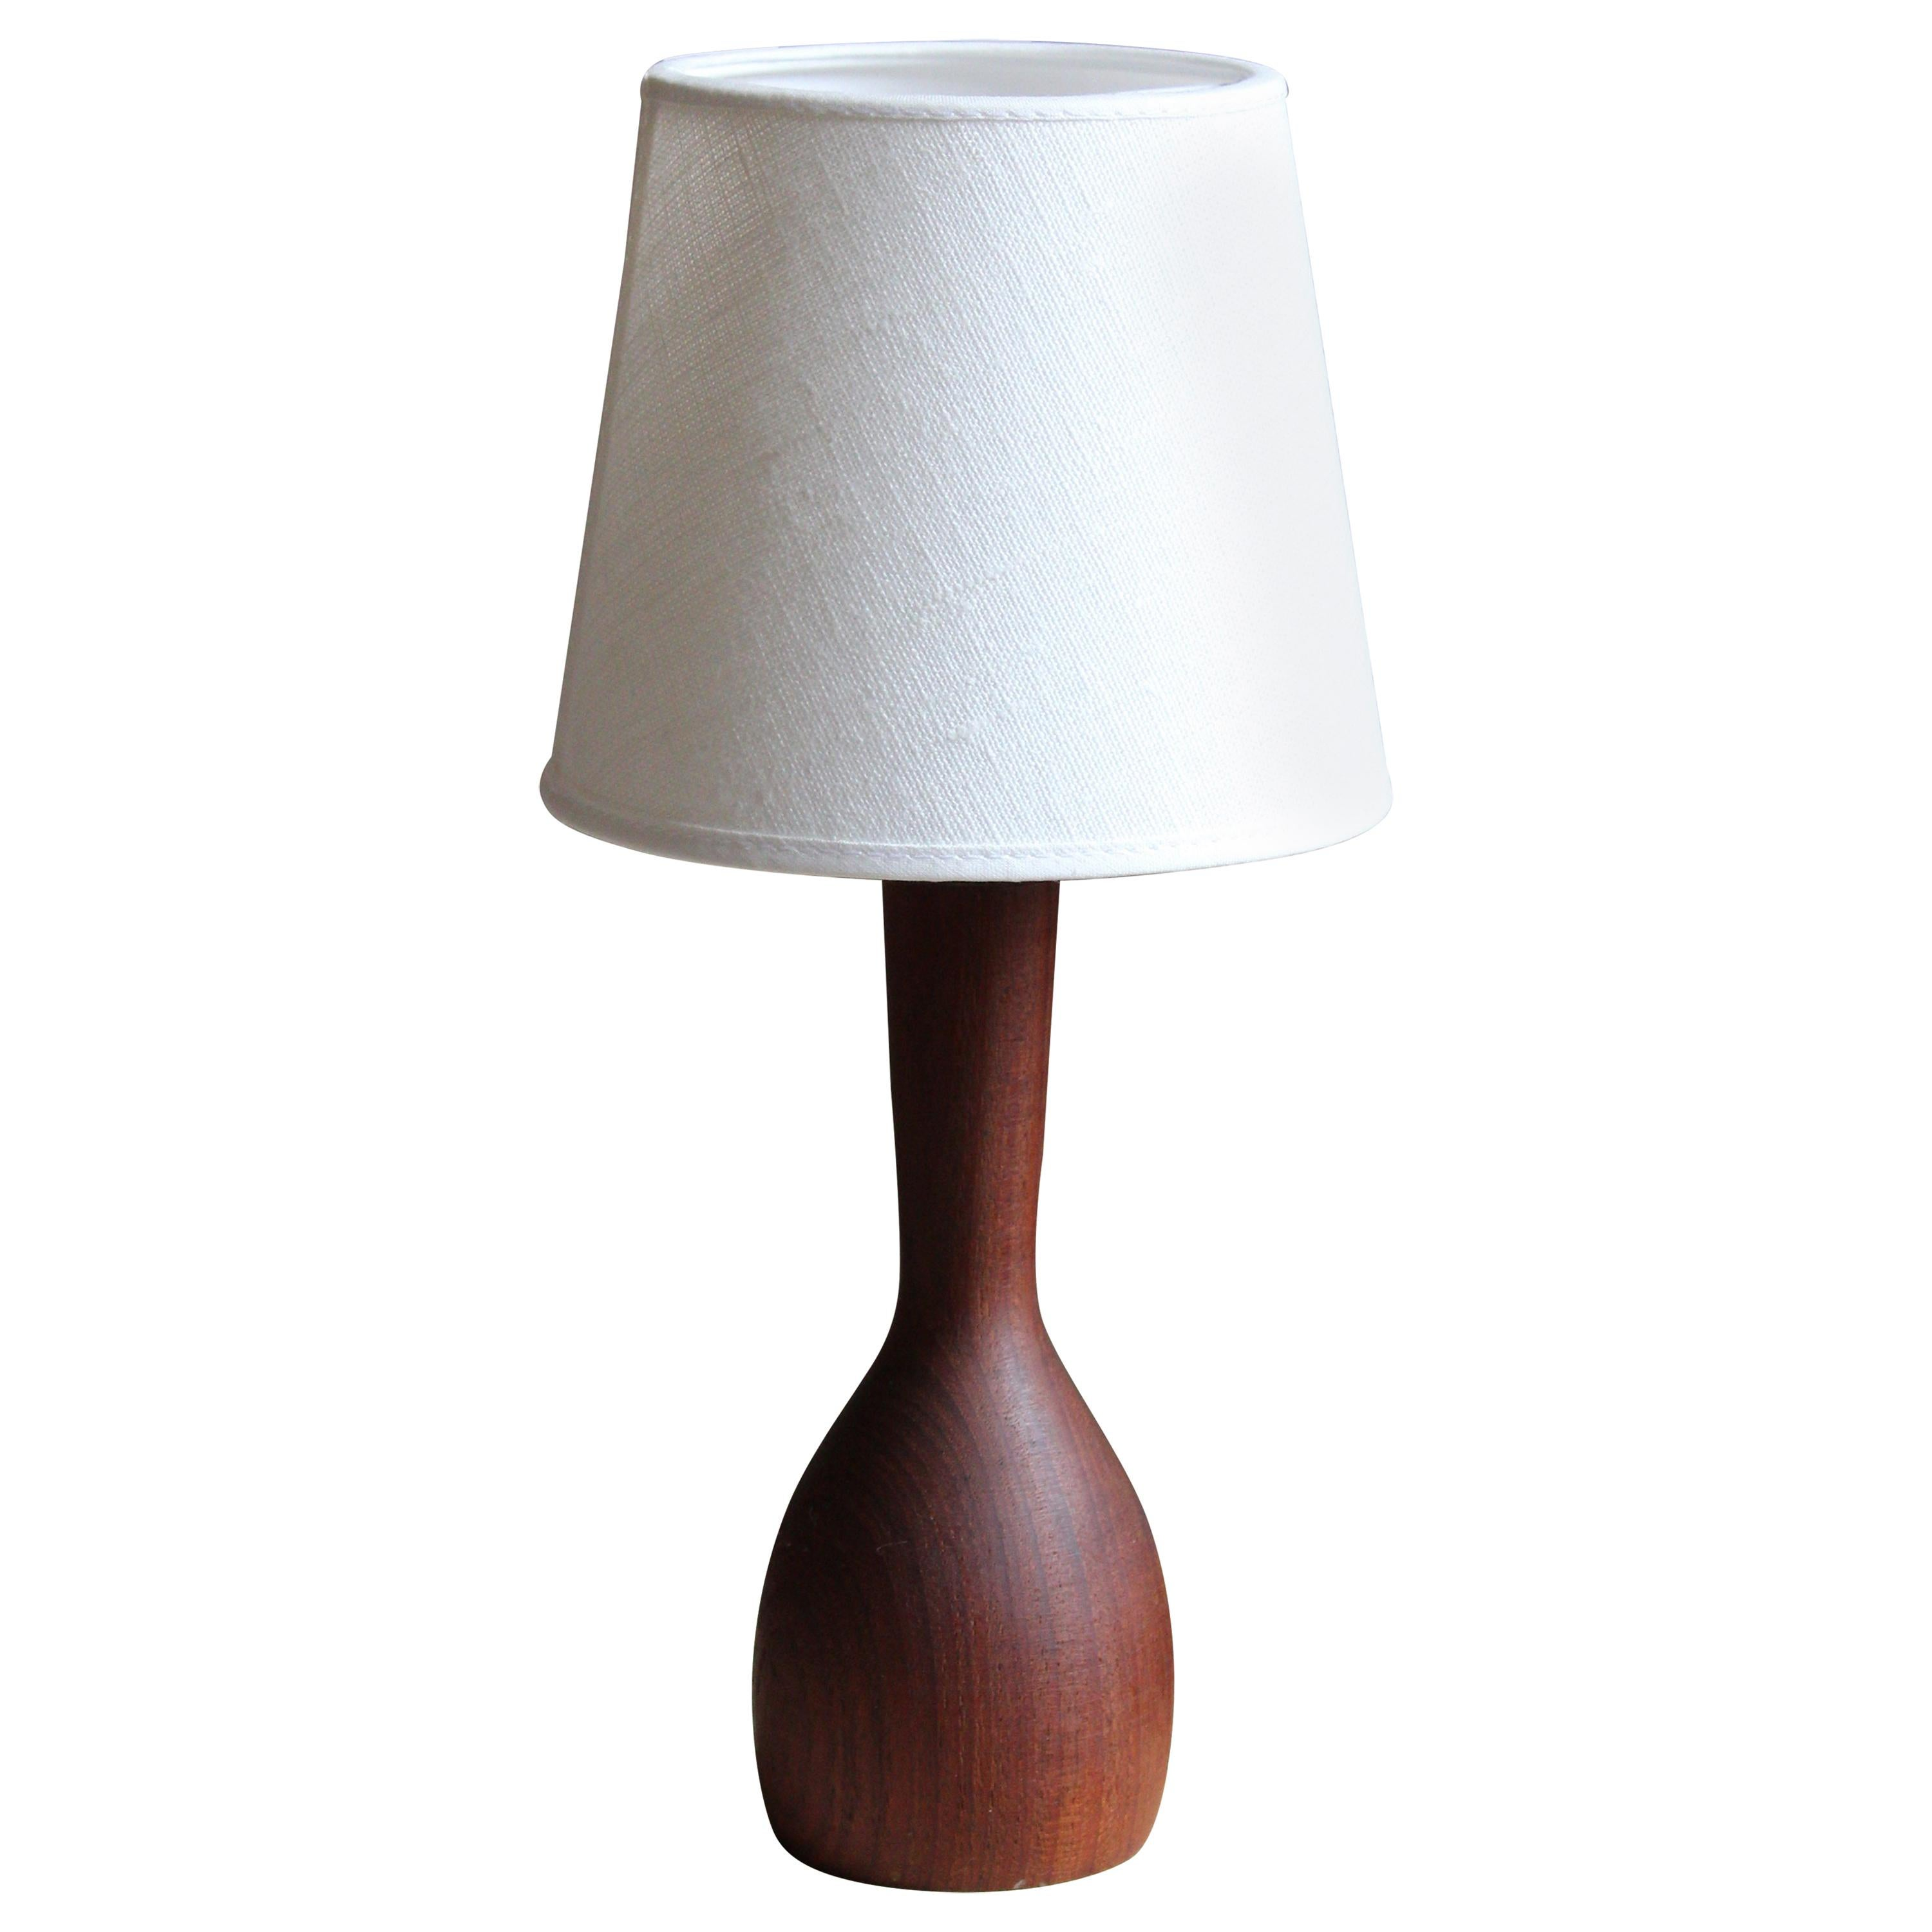 Swedish Modernist Designer, Organic Table Lamp, Teak, Linen, Sweden, 1950s